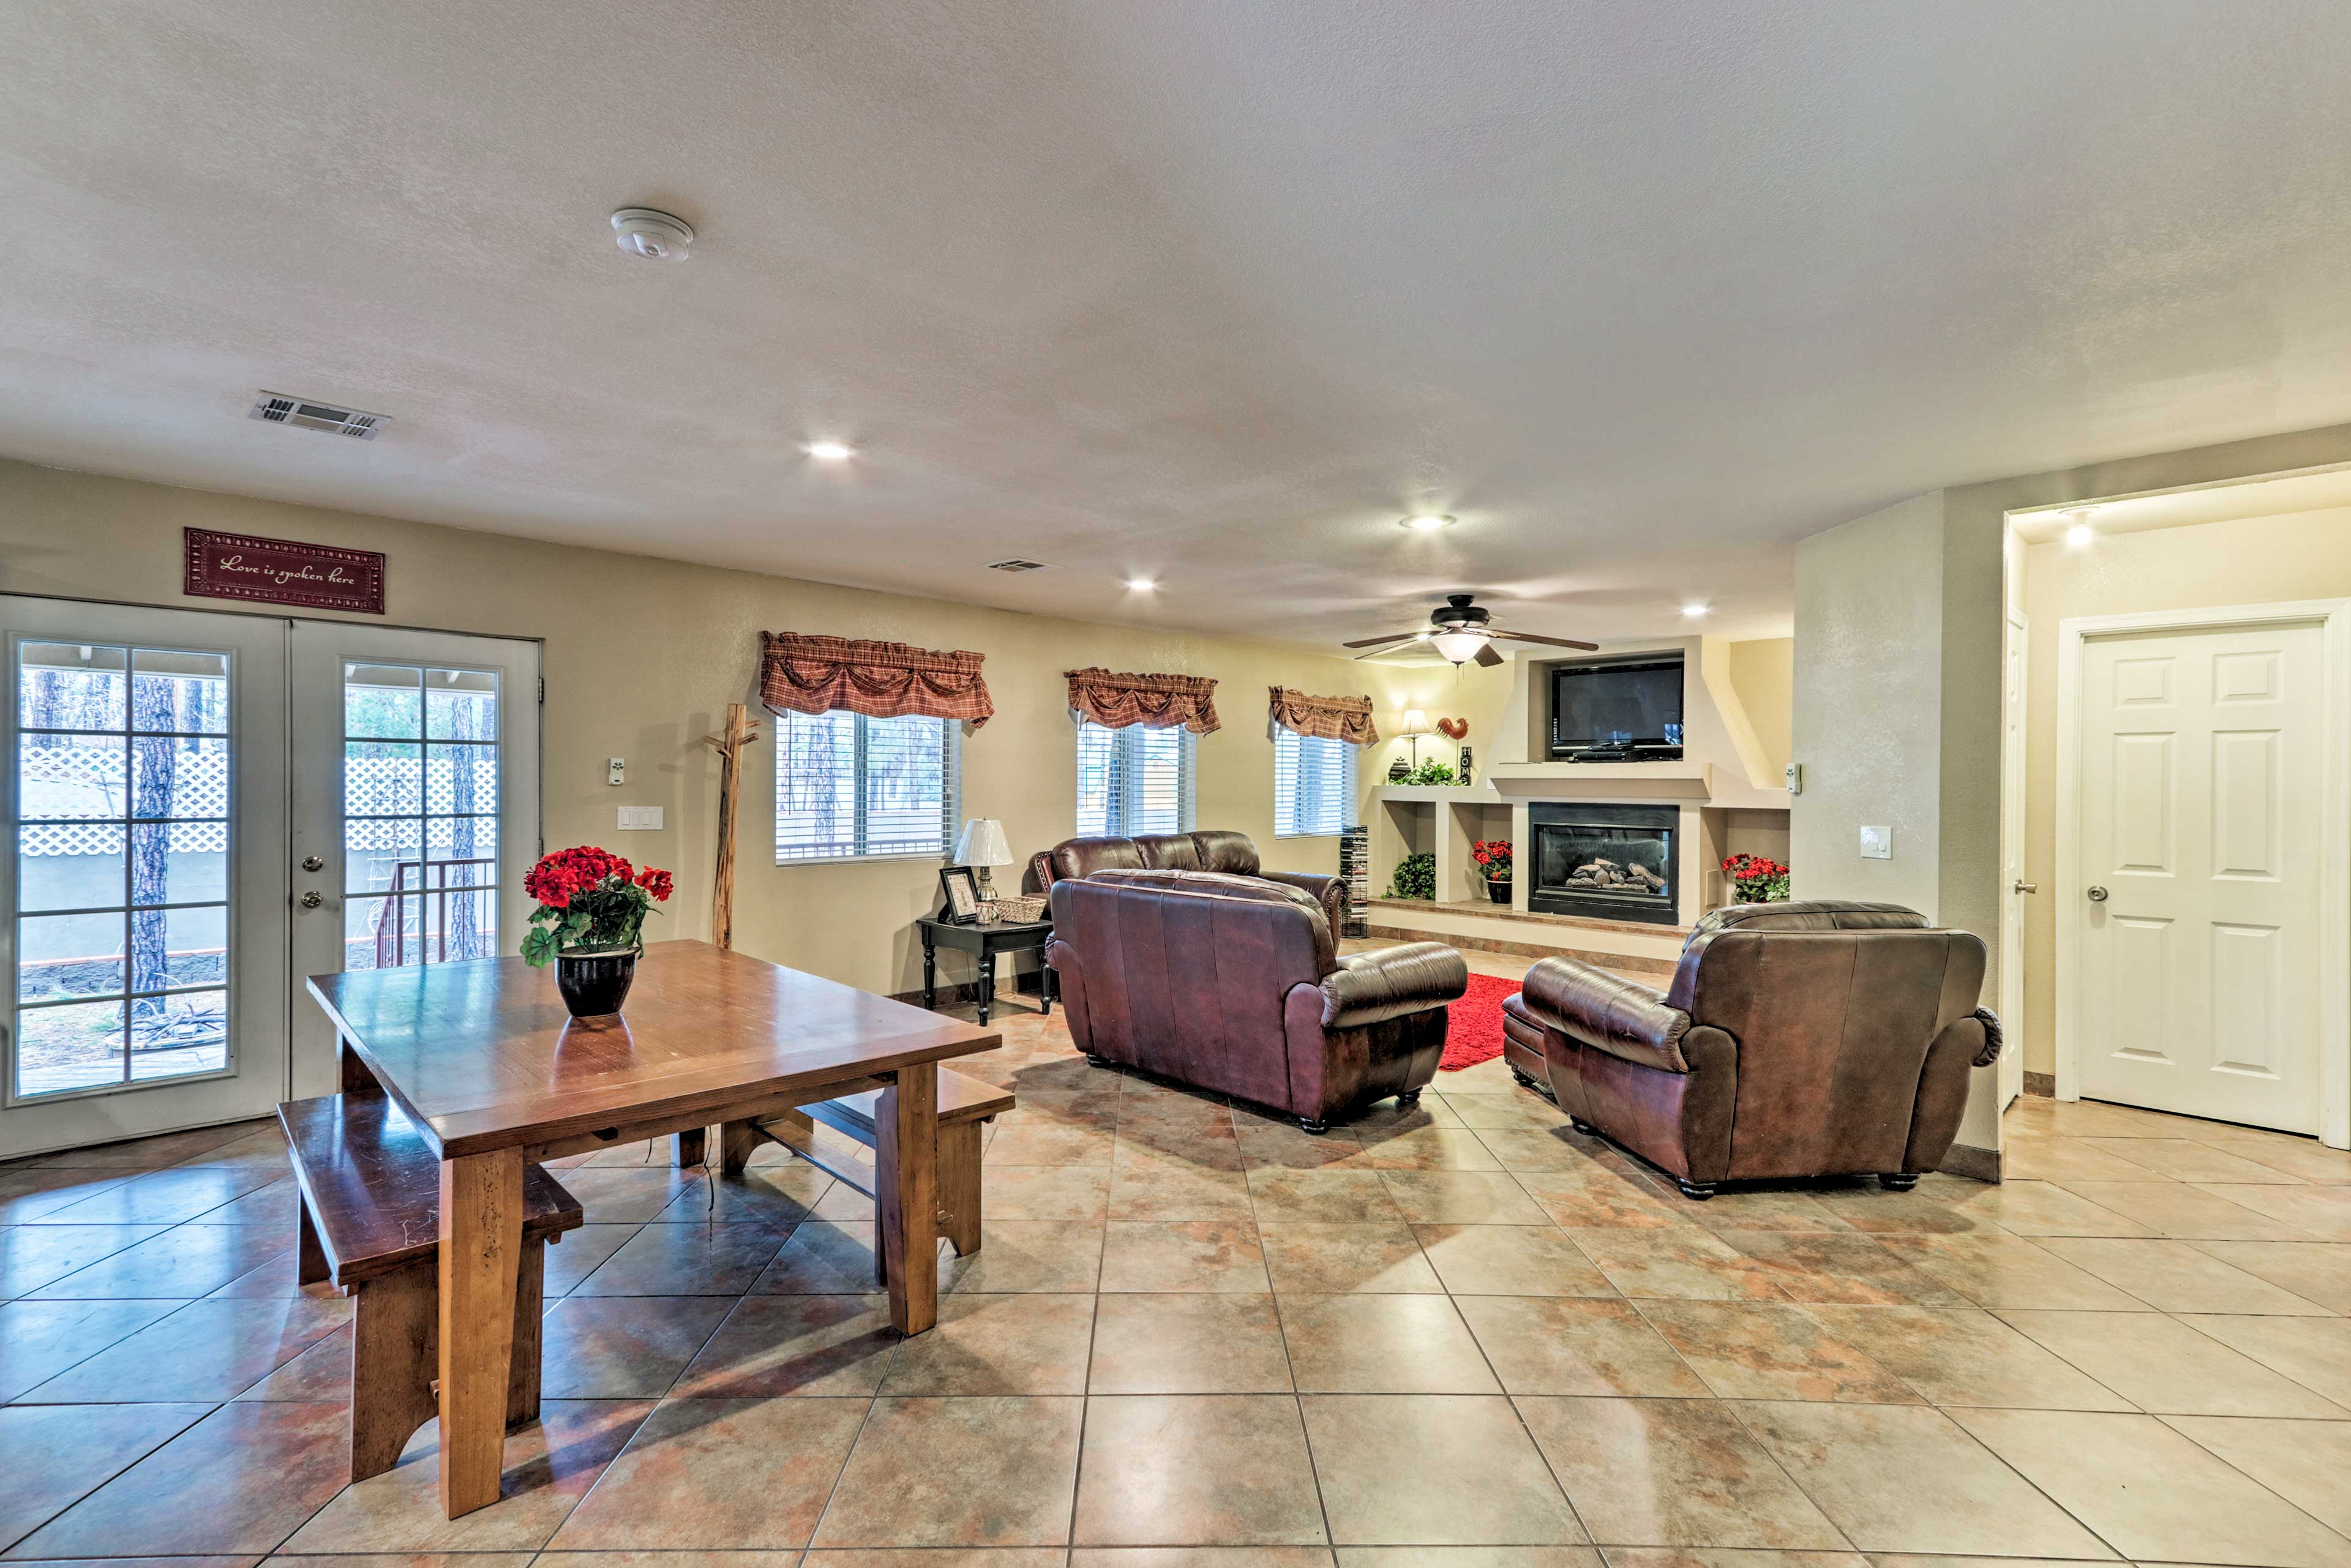 The open concept living area boasts deck access through the French doors.